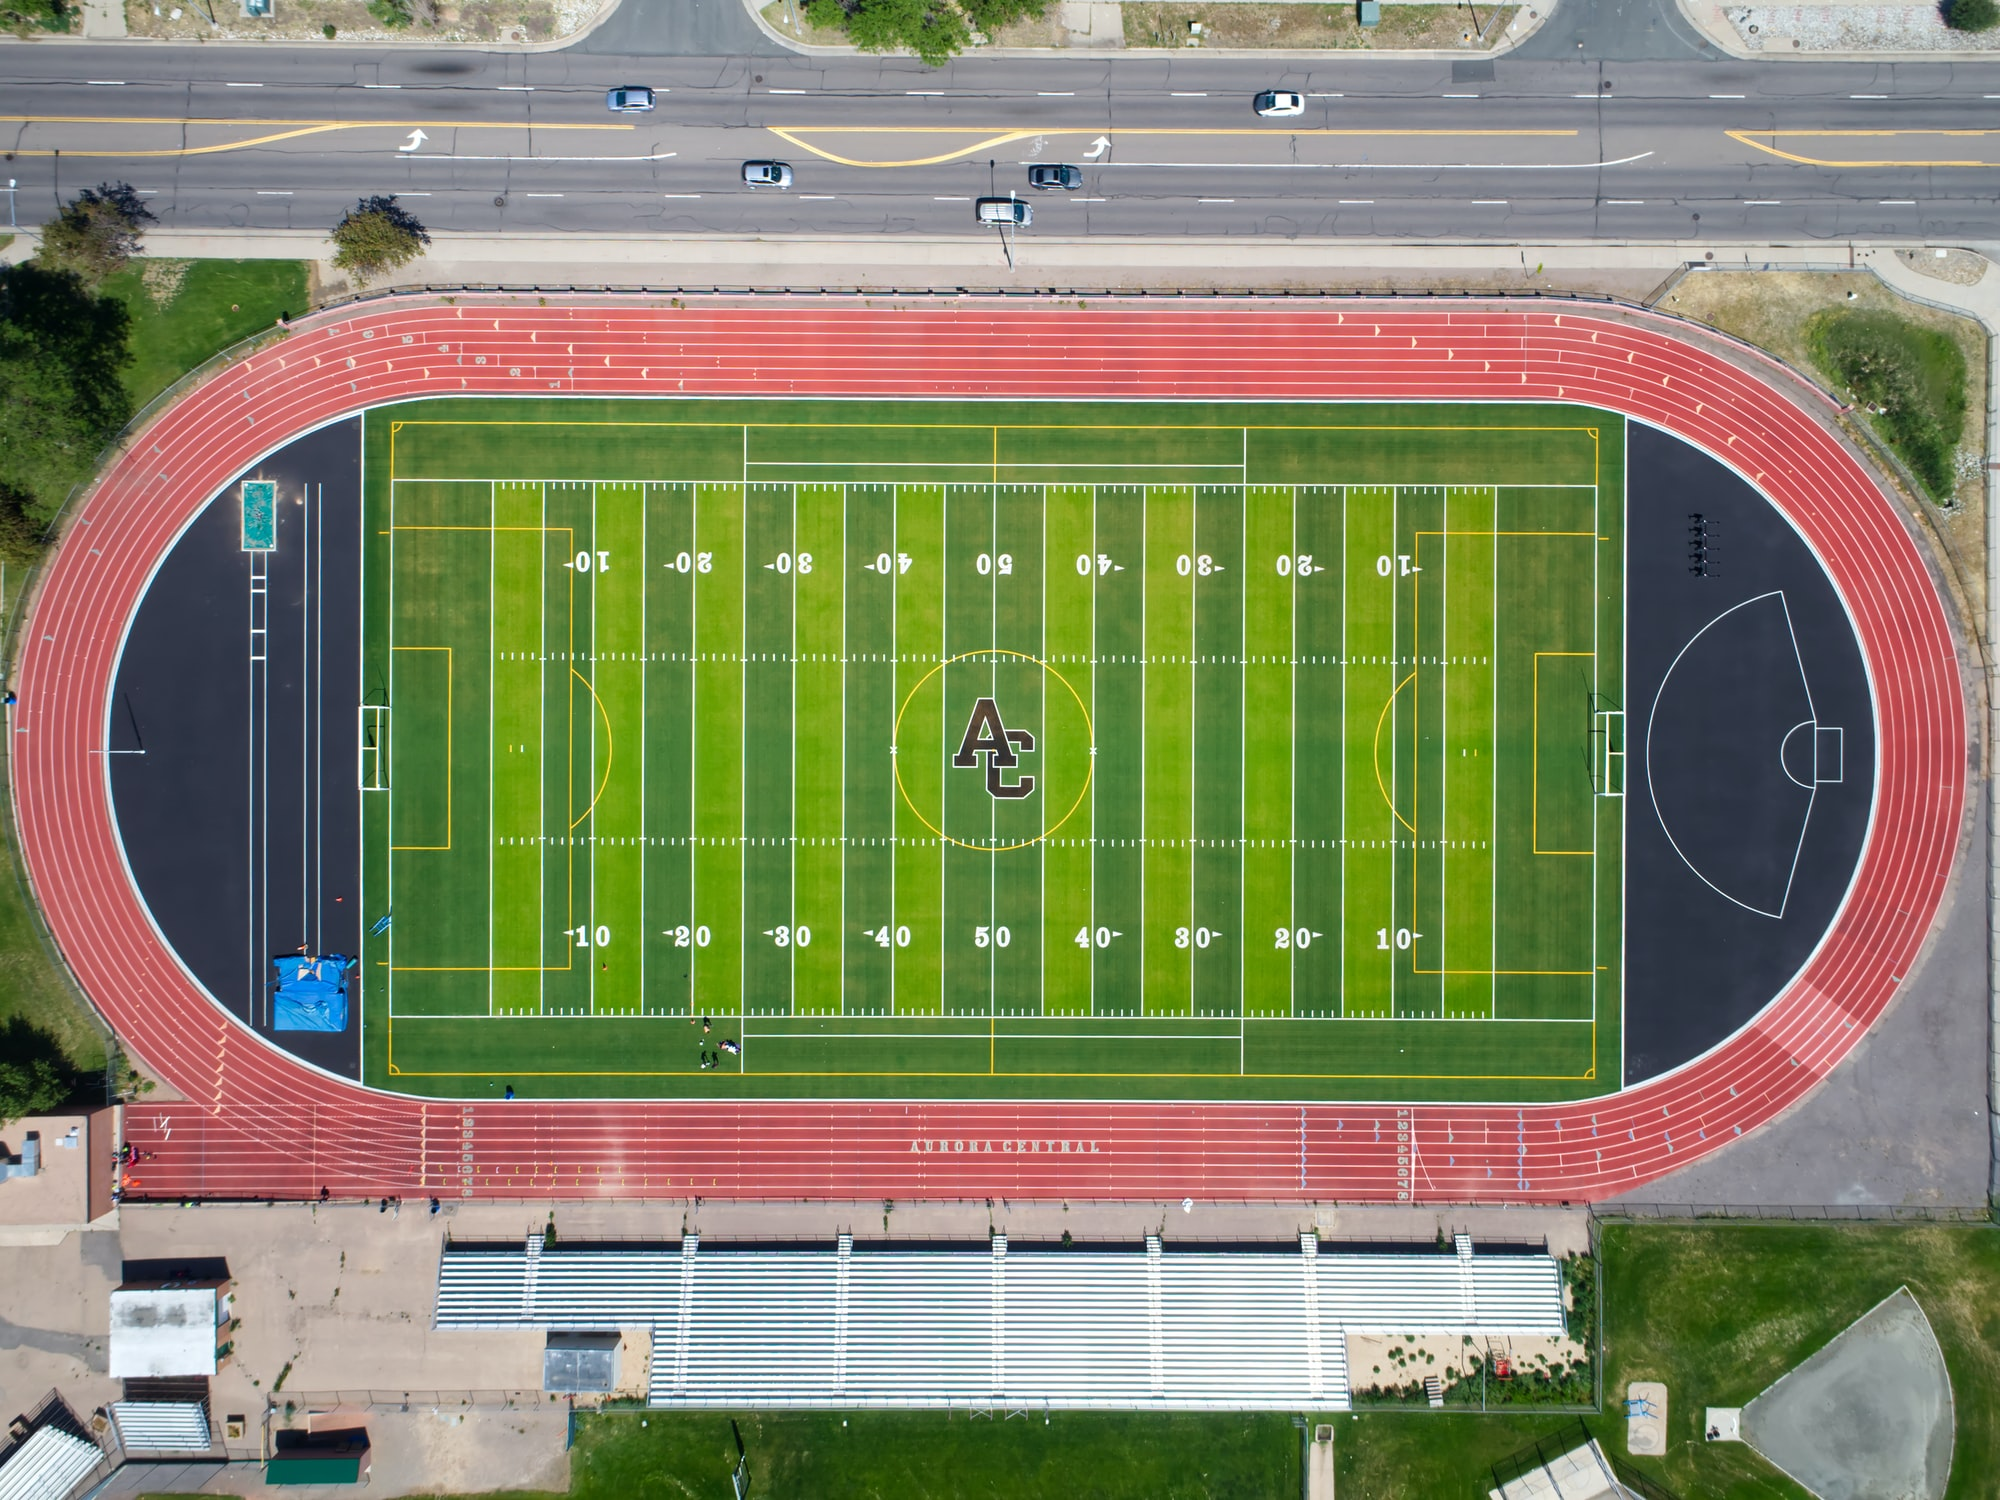 Aurora Central High School track and football/soccer field.